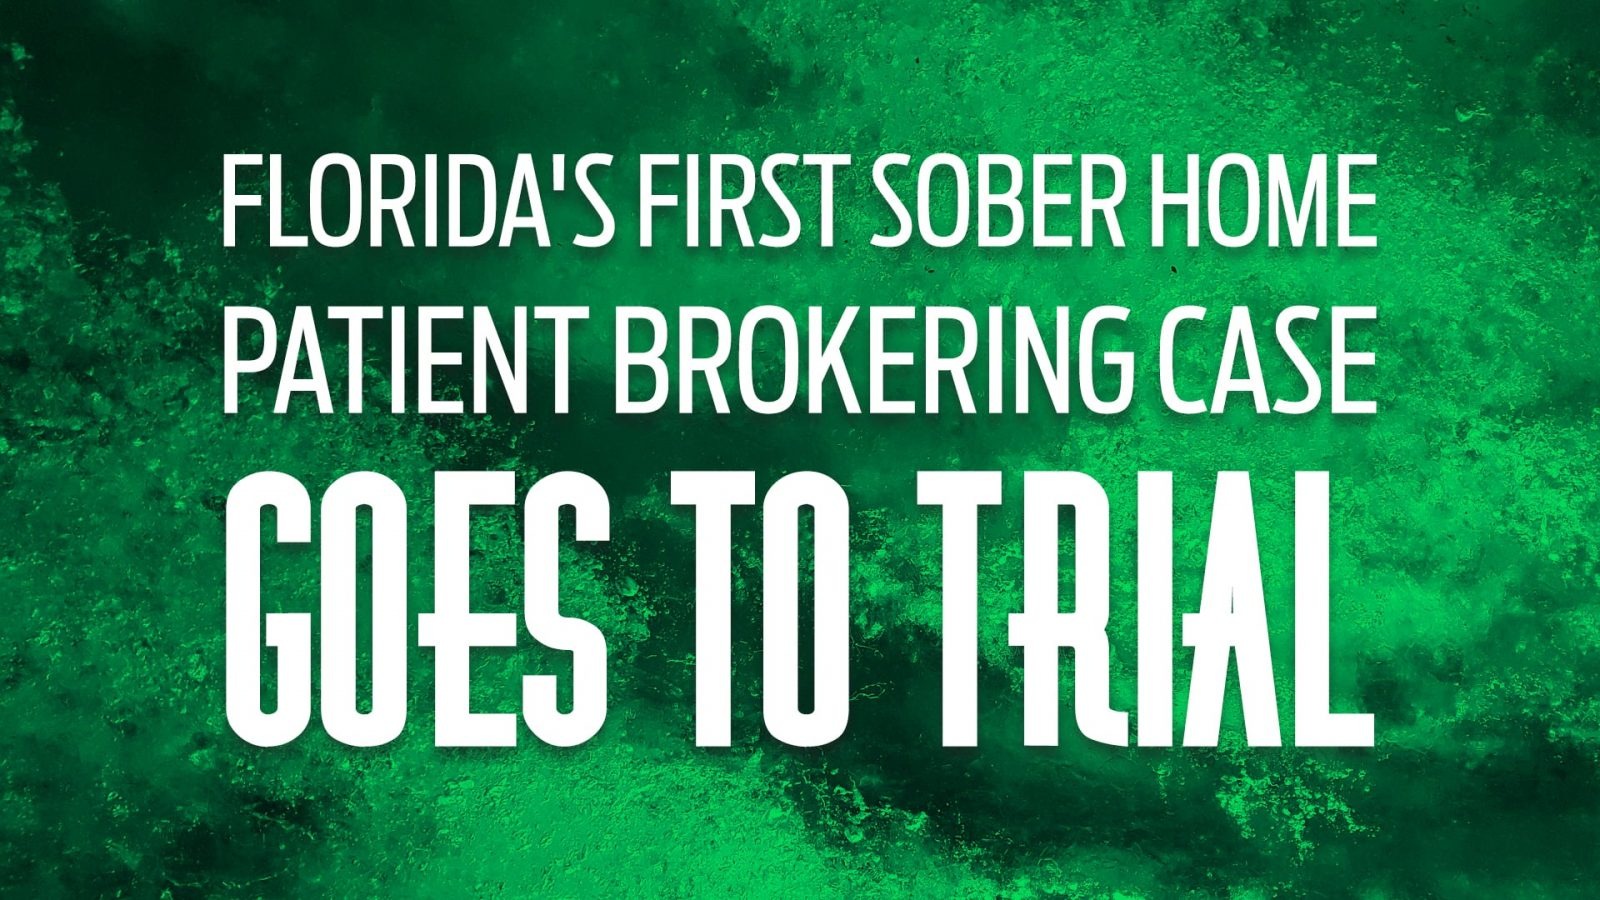 Florida's First Sober Home Patient Brokering Case Goes to Trial